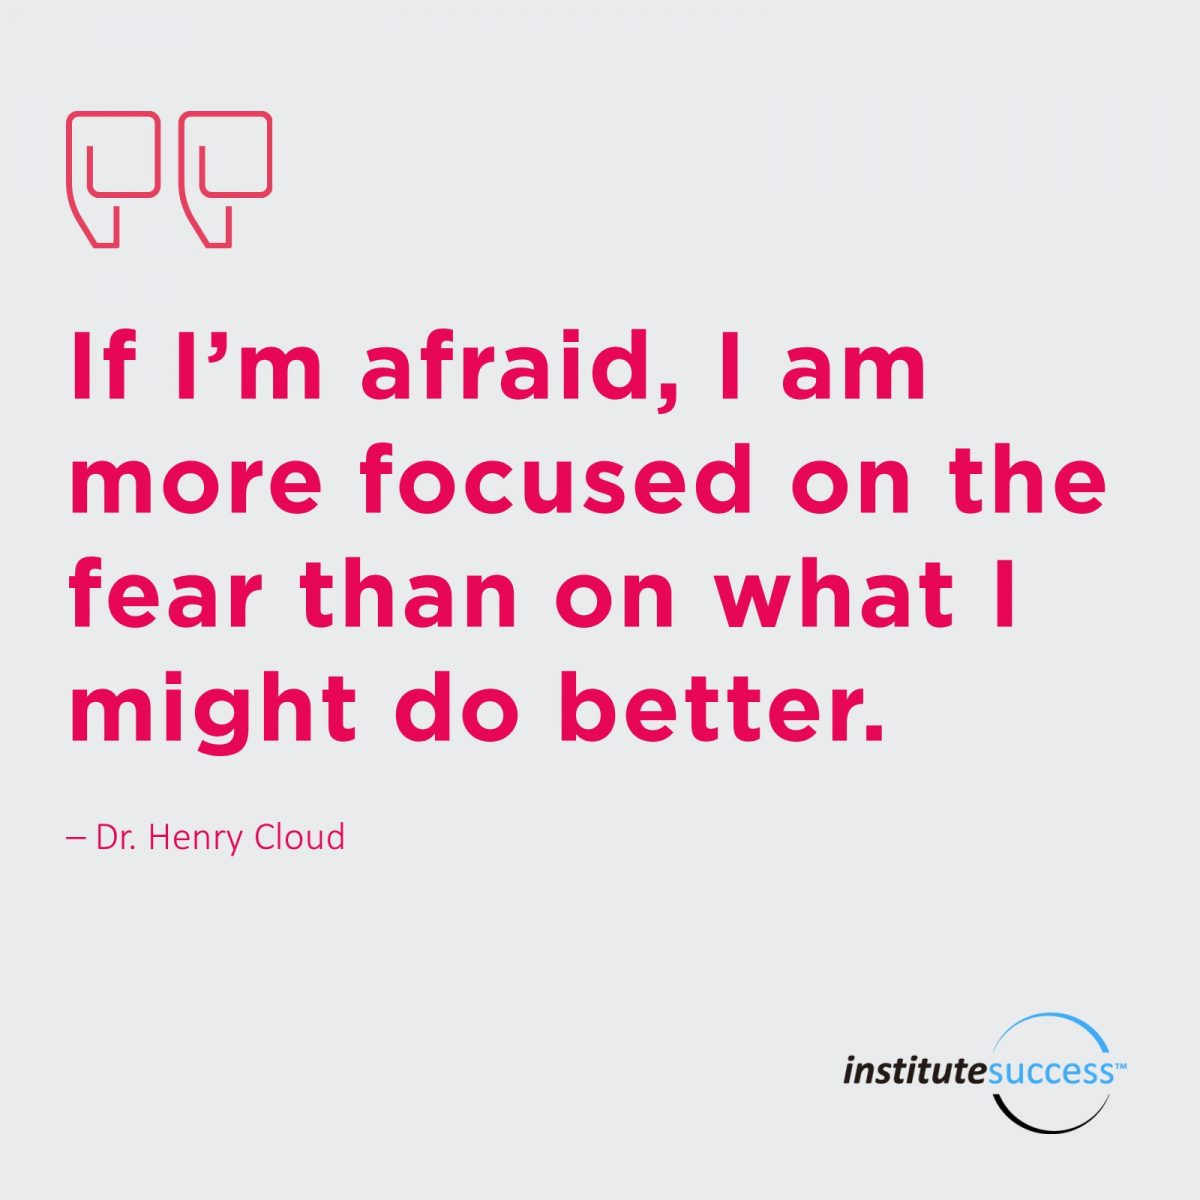 If I'm afraid, I am more focused on the fear than on what I might do better.  Dr. Henry Cloud